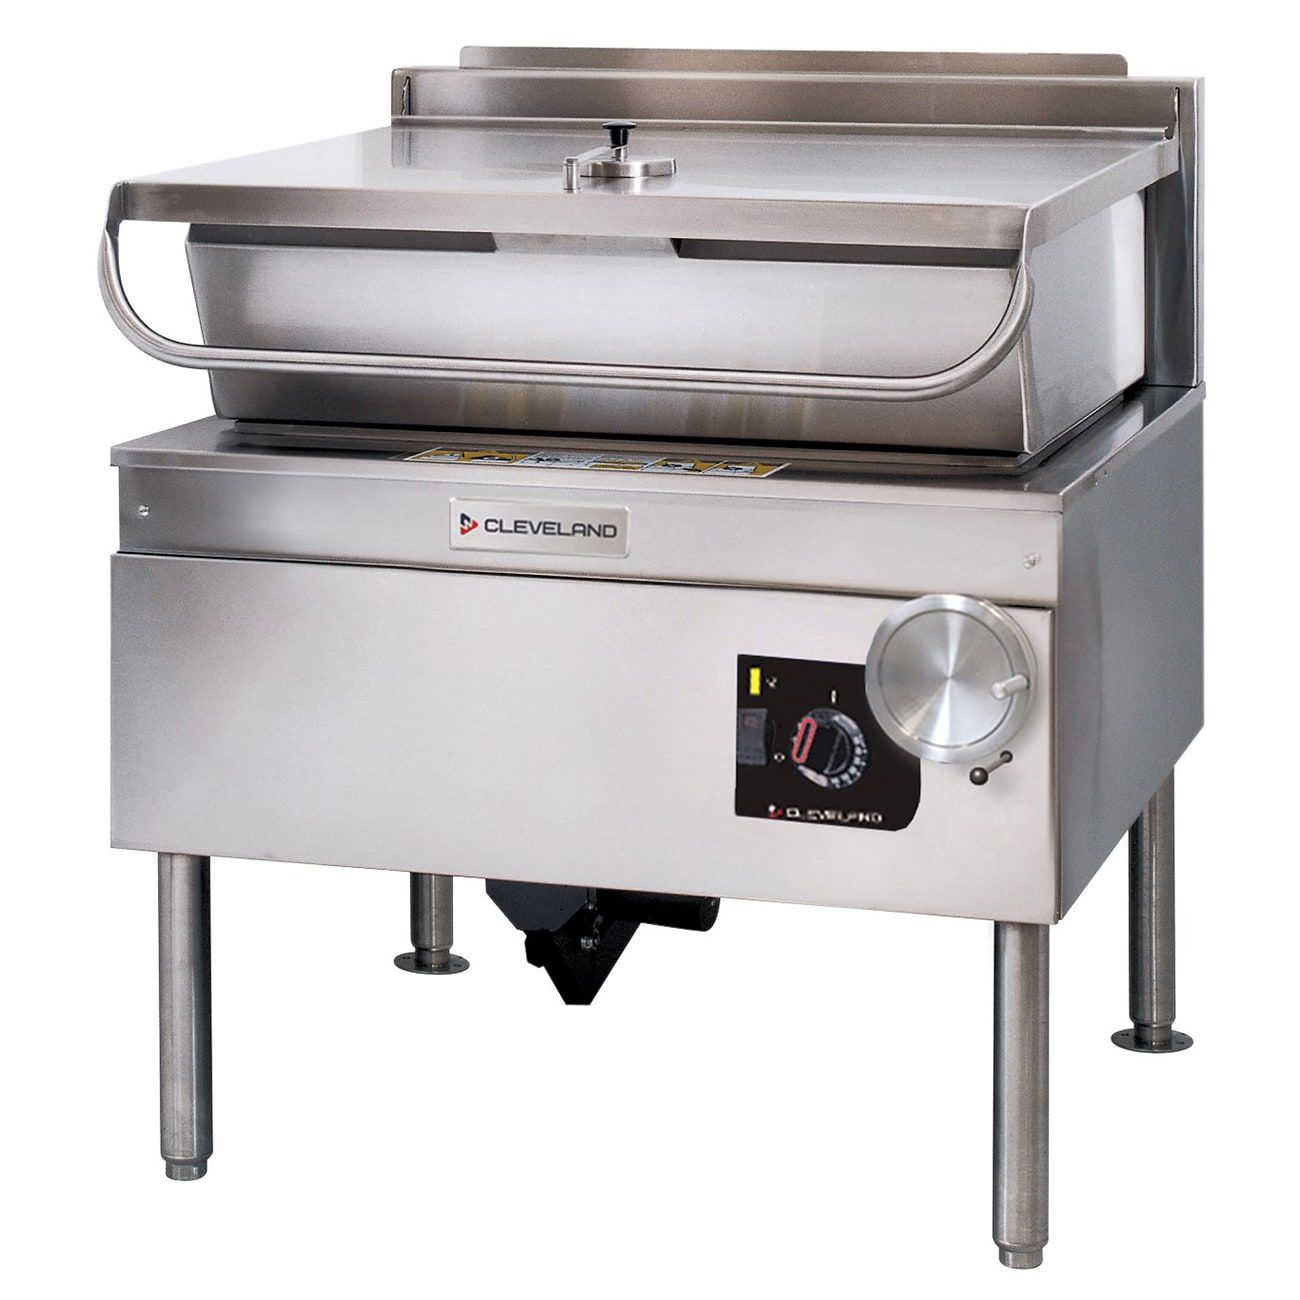 Cleveland SGL40TR NG 40-gal Tilting Skillet w/ Modular Open Base & Spring Assisted Cover Stainless NG